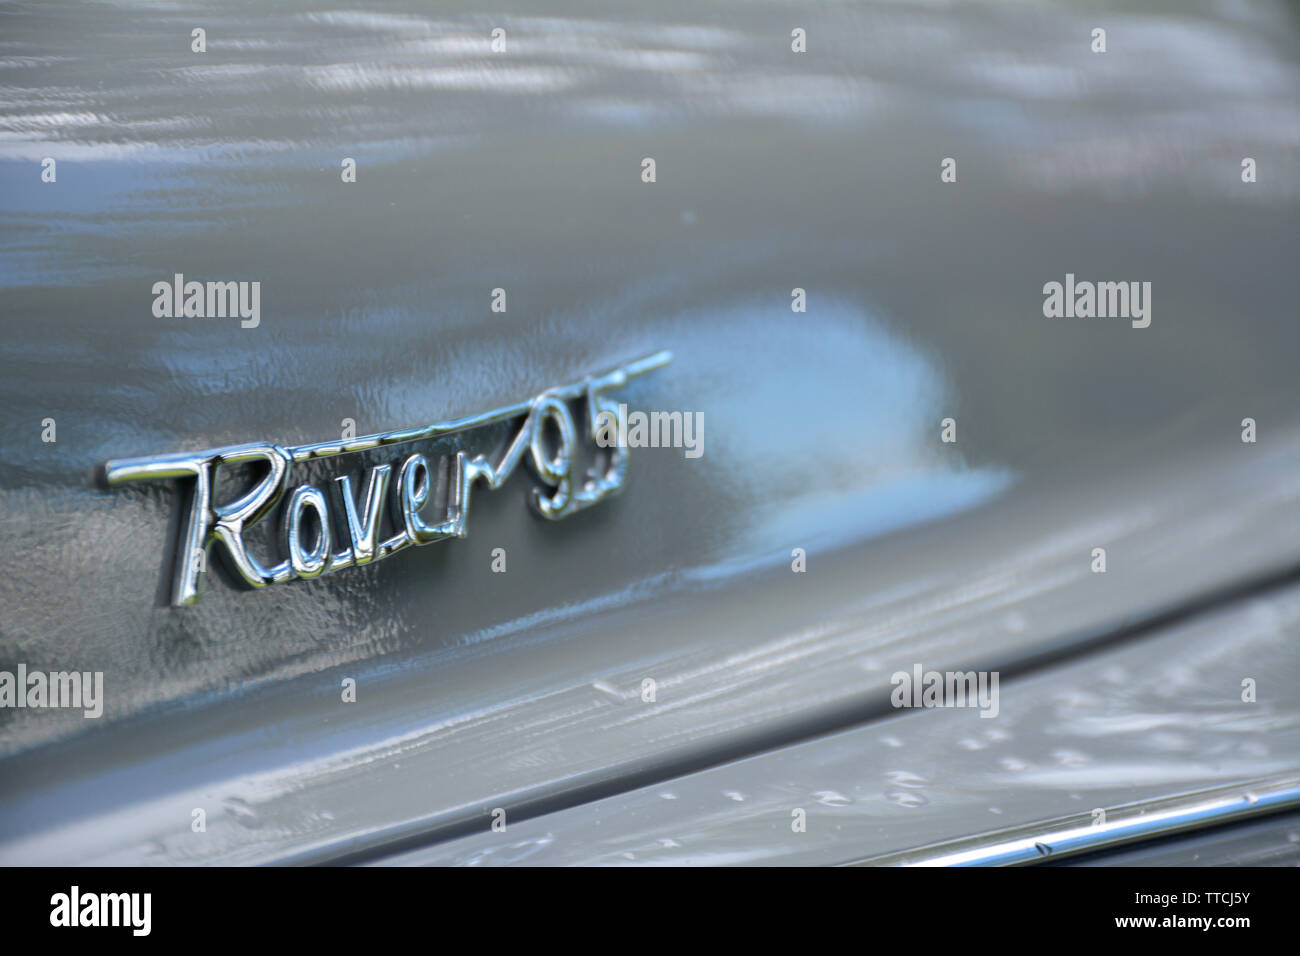 Close up of a Rover 95 Classic Car showing the Chrome Badge - Stock Image